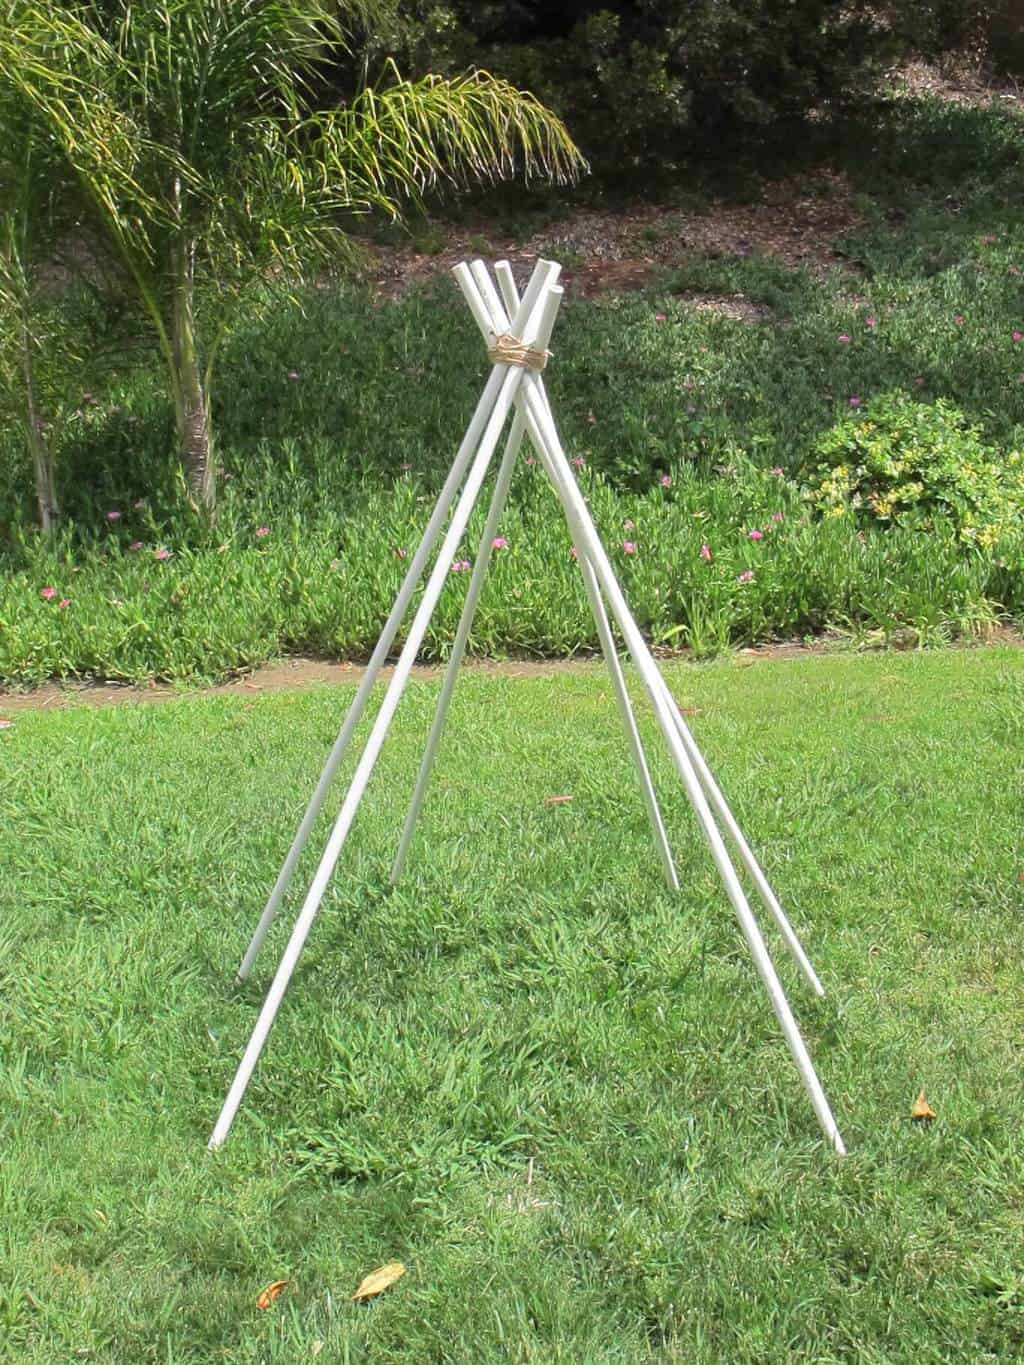 tie pvc pipe for teepee